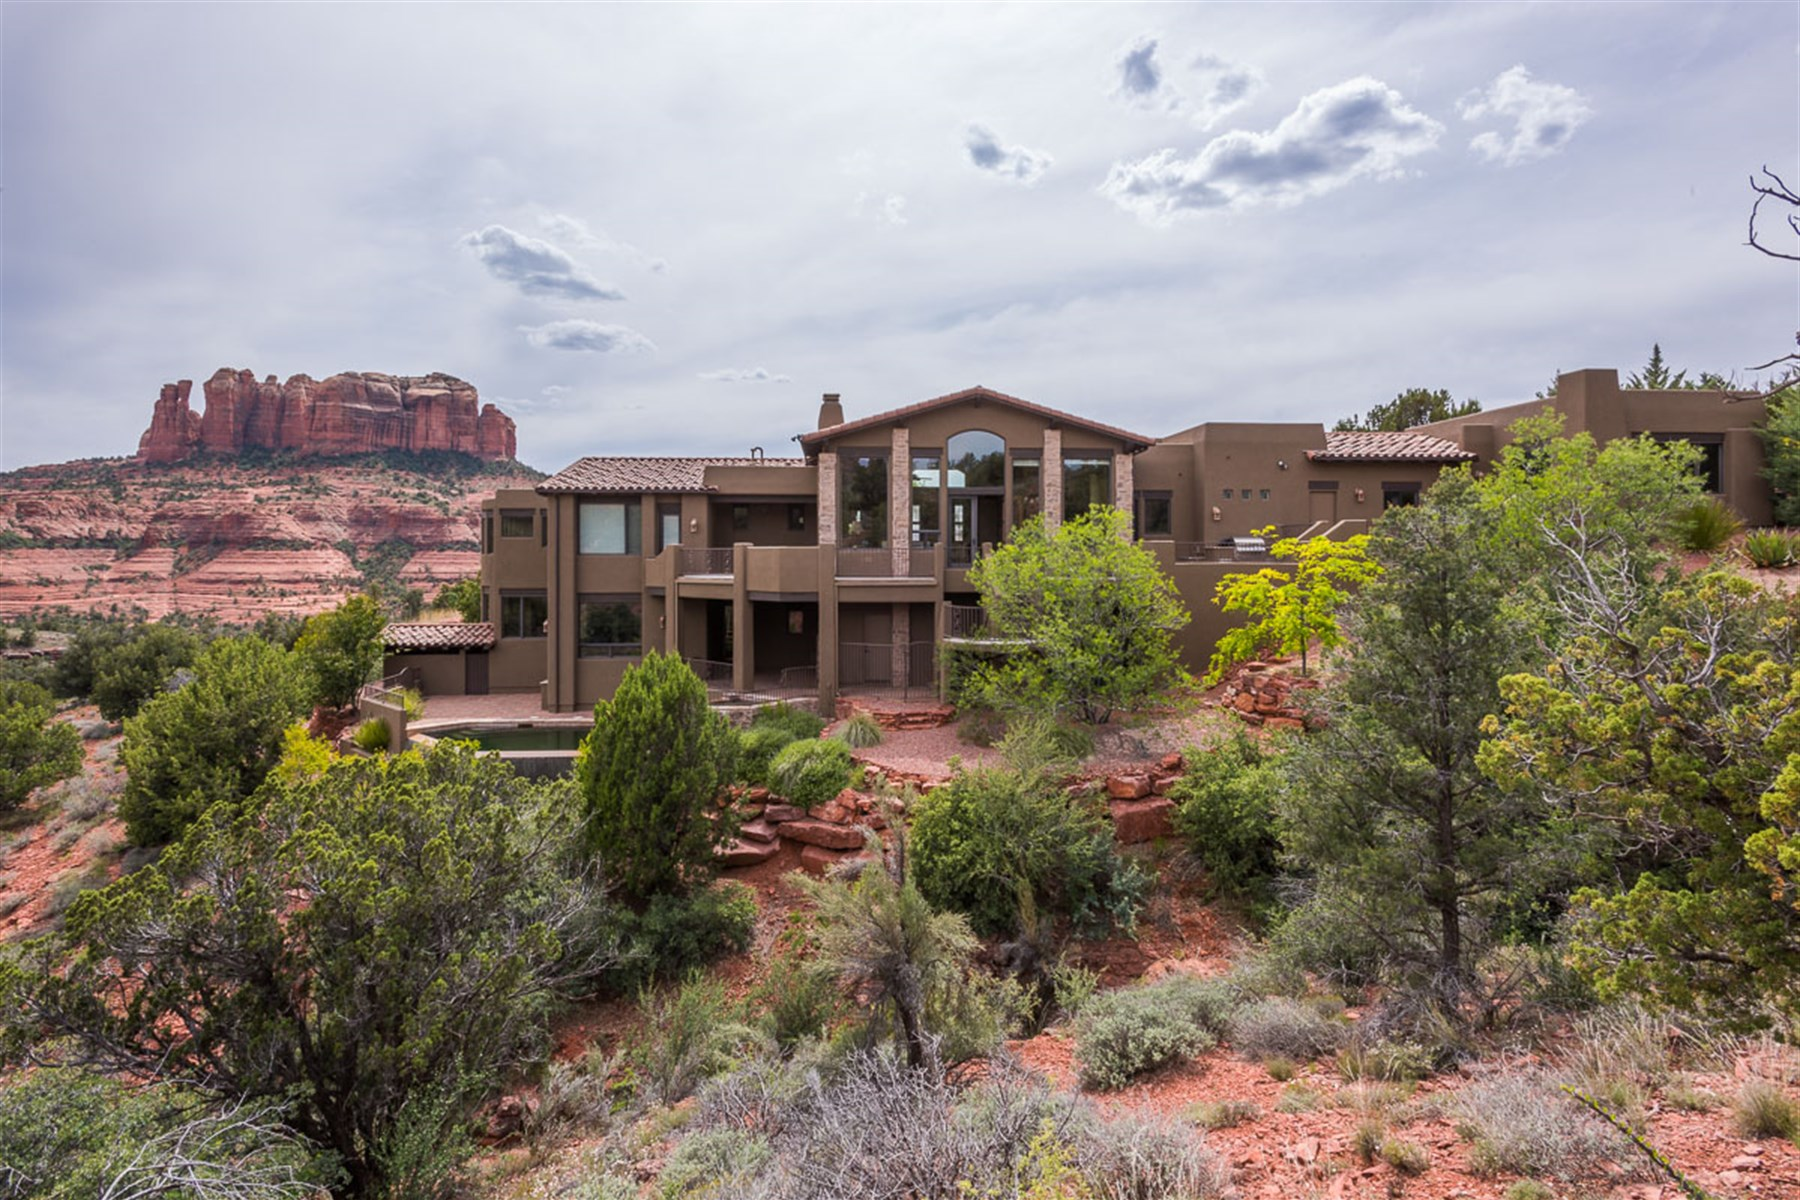 一戸建て のために 売買 アット Sante Fe luxury home sits elevated in this magical environment of Back O' Beyond 15 ROSEMARY CT Sedona, アリゾナ, 86336 アメリカ合衆国